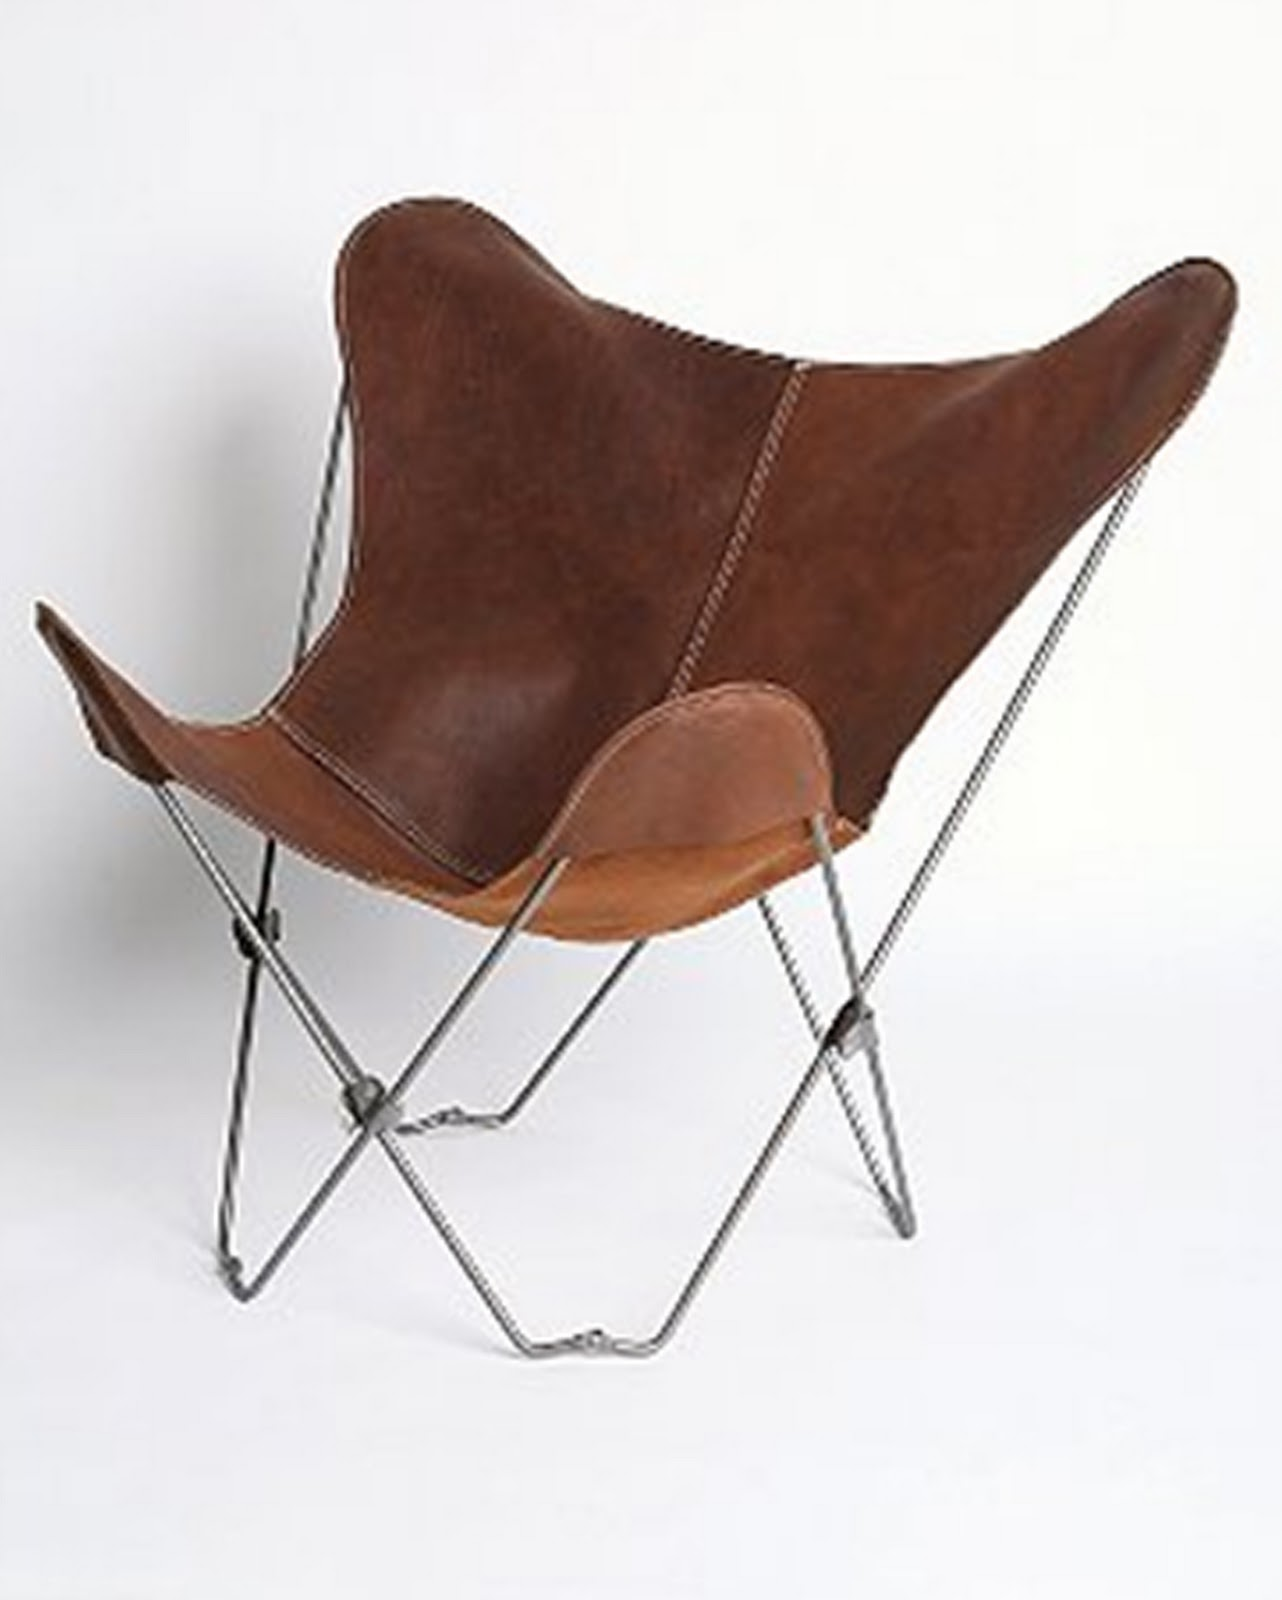 Urban Outfitters Chair Folding Beach With Wheels Rg The Shop Library Uo Lux Leather Butterfly